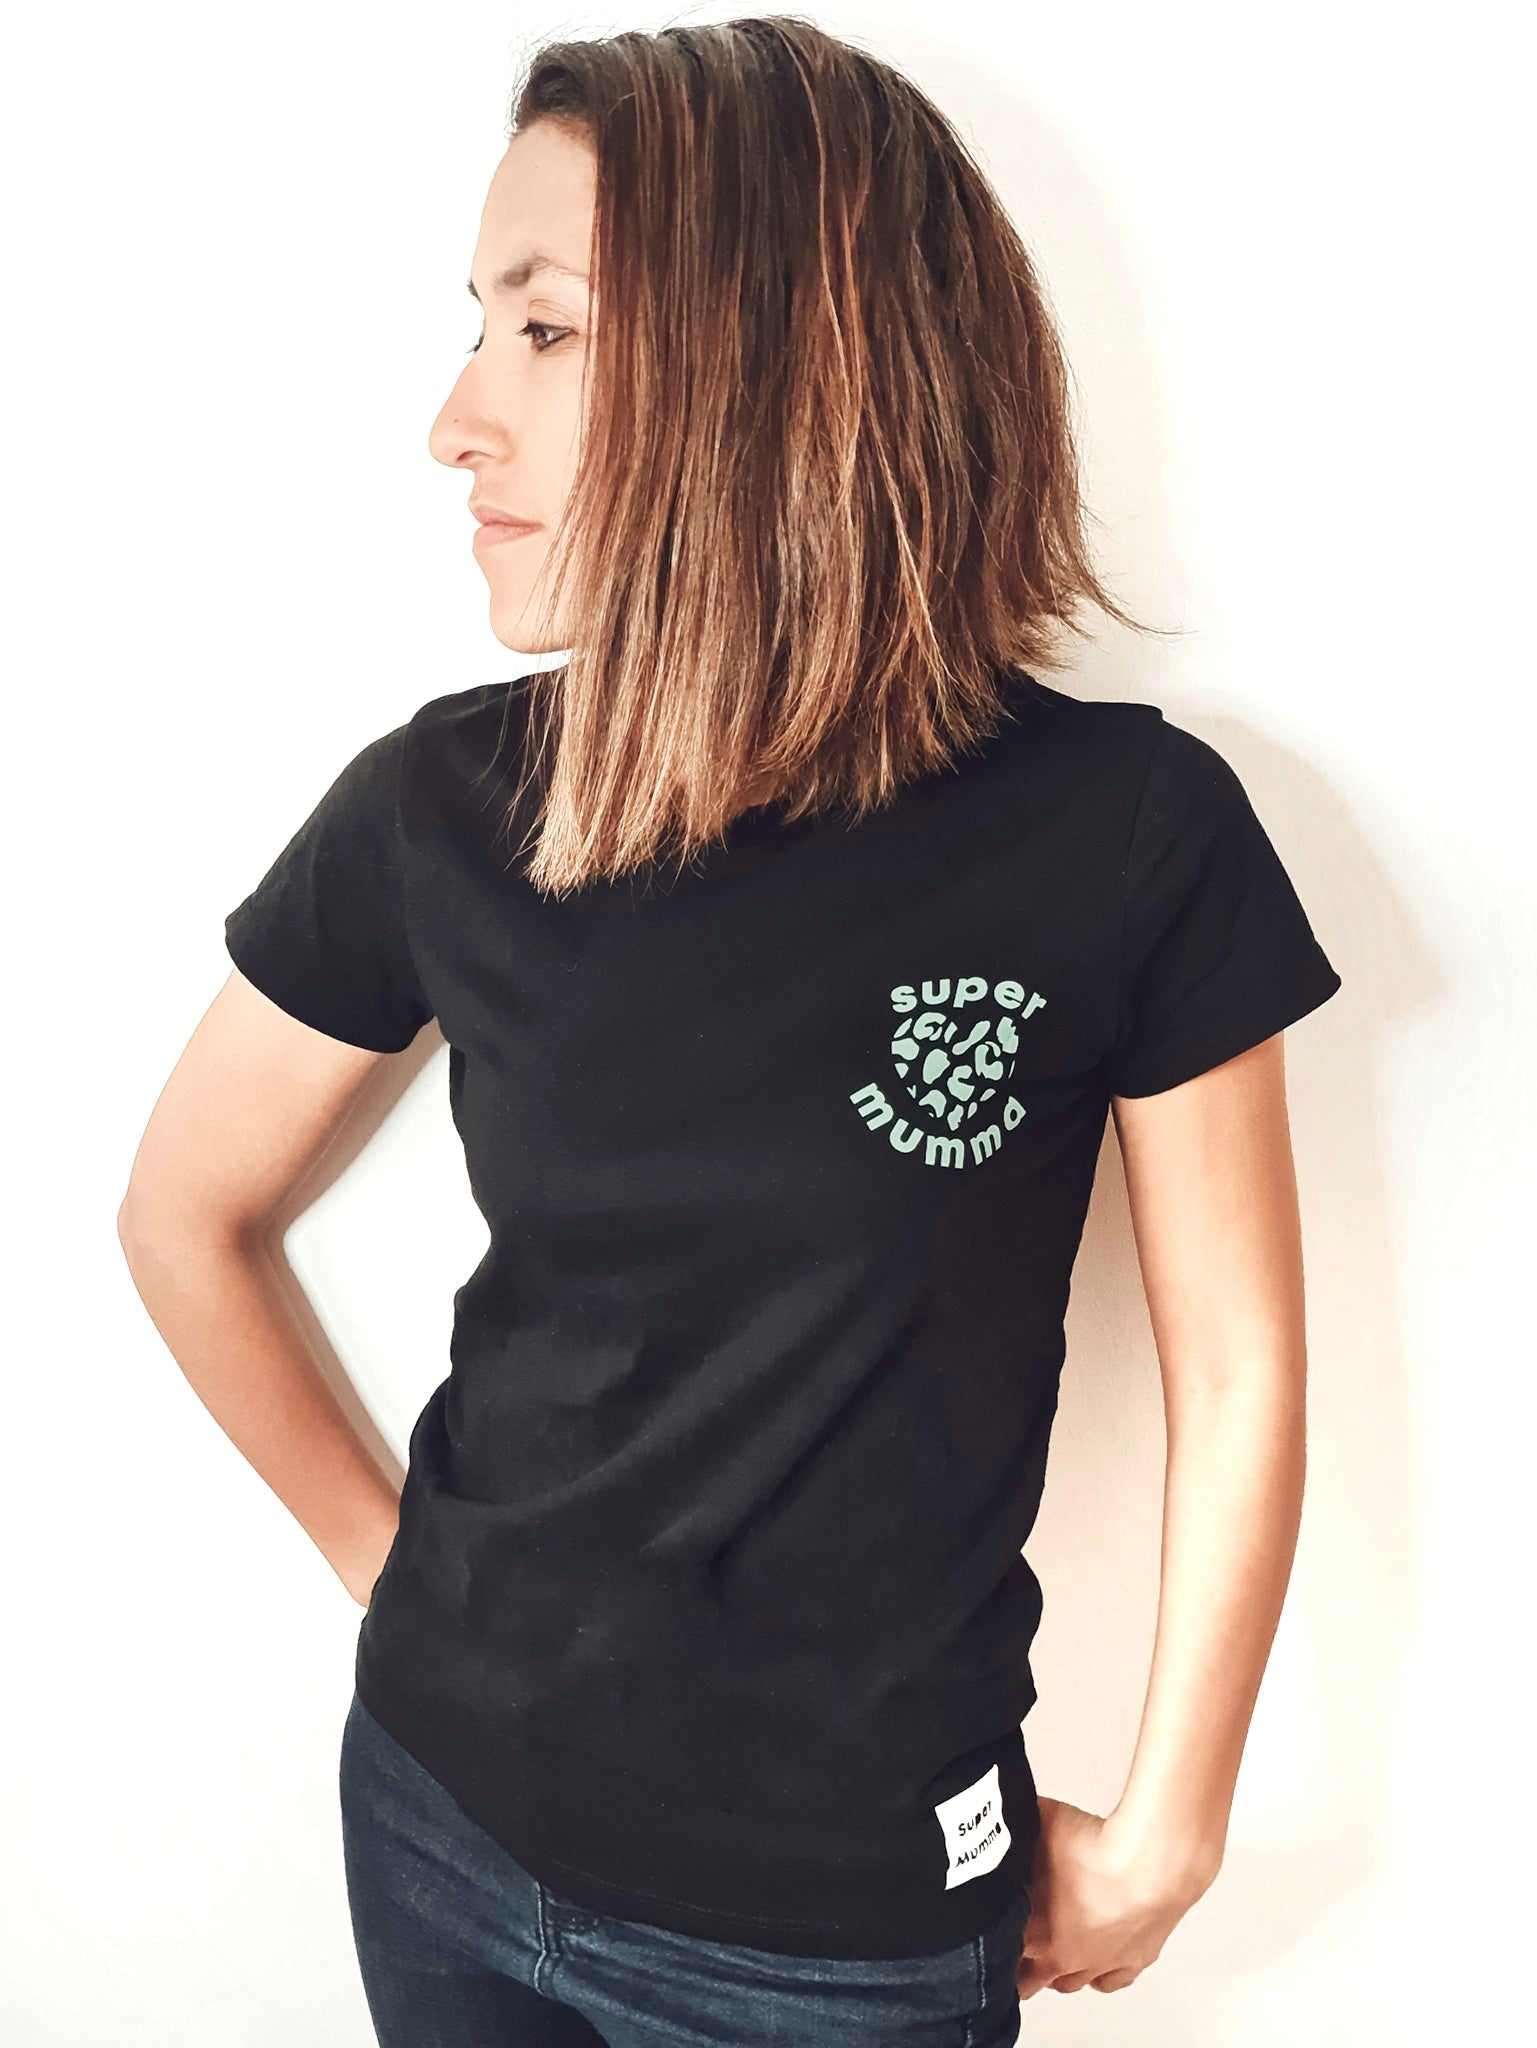 Super Mumma Organic Cotton Short Sleeve Tshirt with Mint Green Animal Print Heart to empower mums to feel super